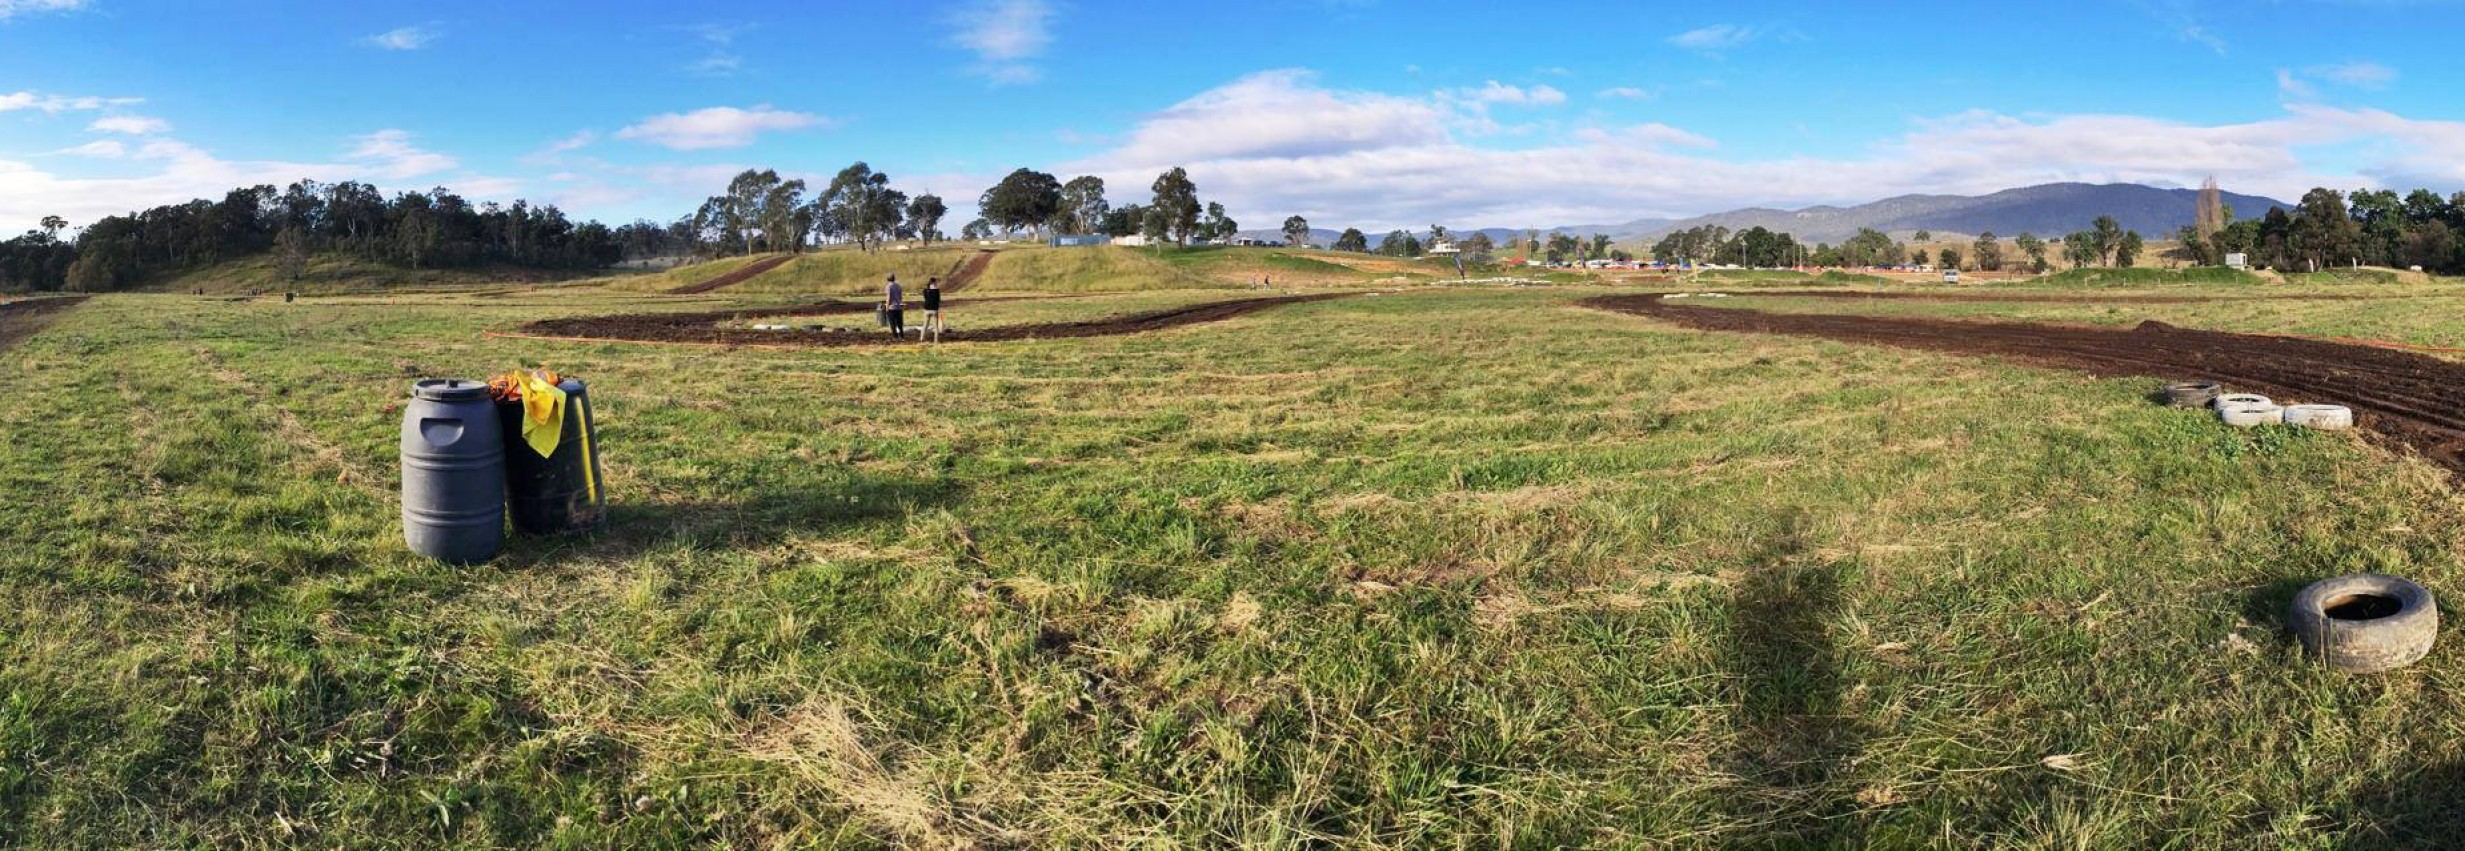 Carlaminda Motocross Track – Cooma Off Road Club